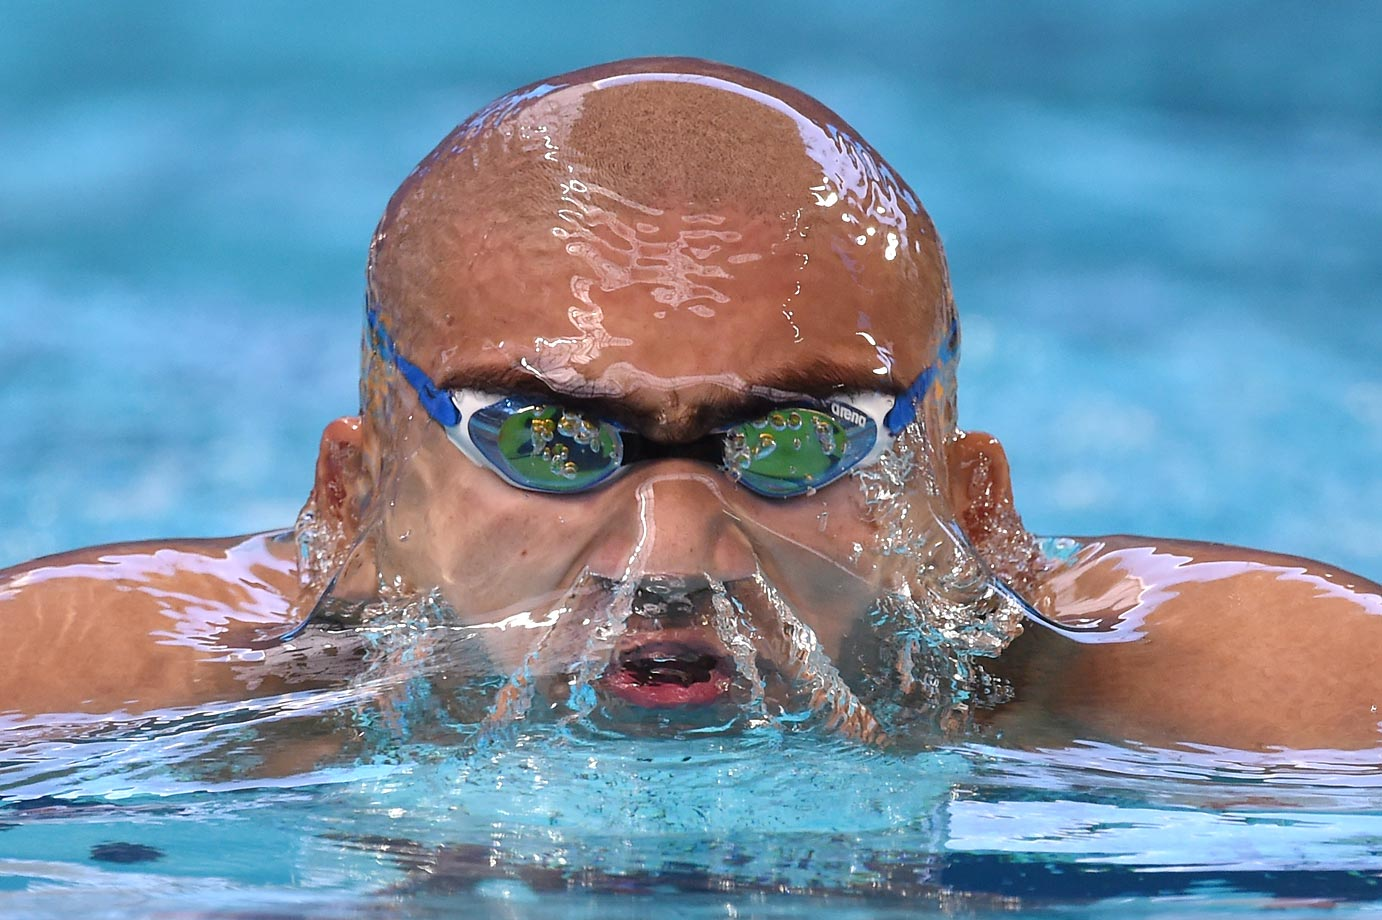 Ahmed Hamdy Salem Hamdy of Egypt competes in the 400m individual medley at the 16th FINA World Championships.